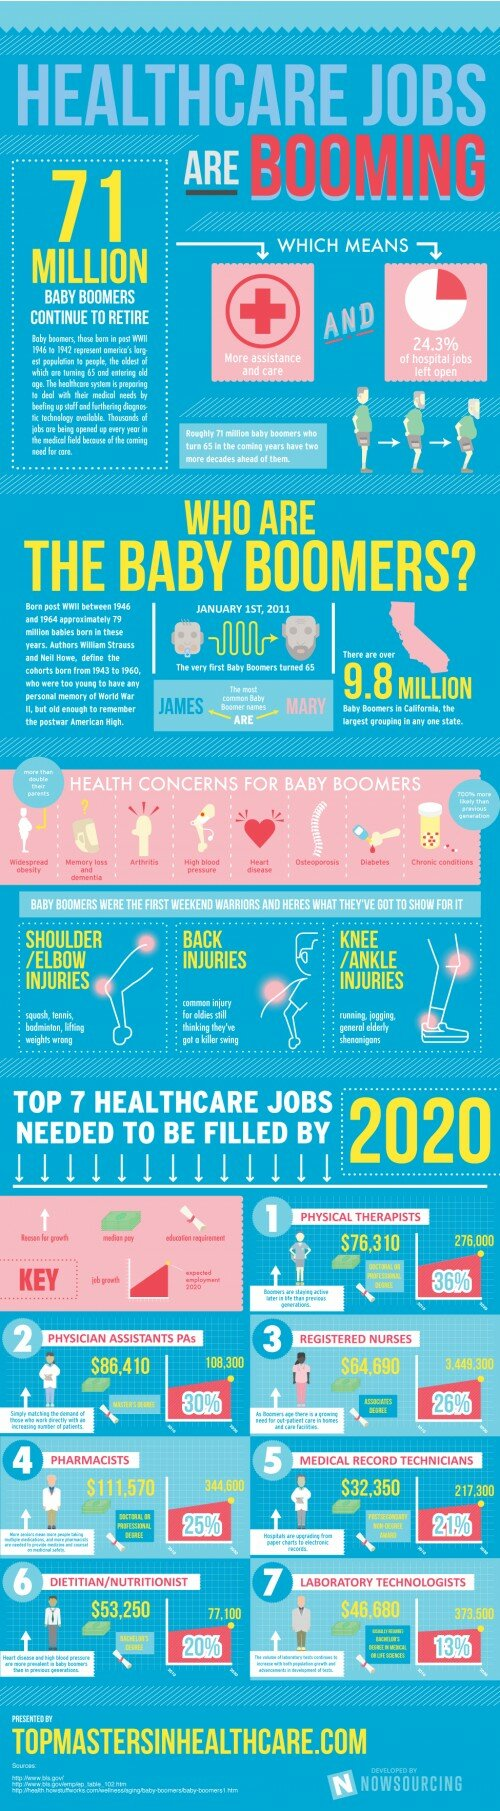 healthcare-jobs-are-booming_50a508fc2157a_w500